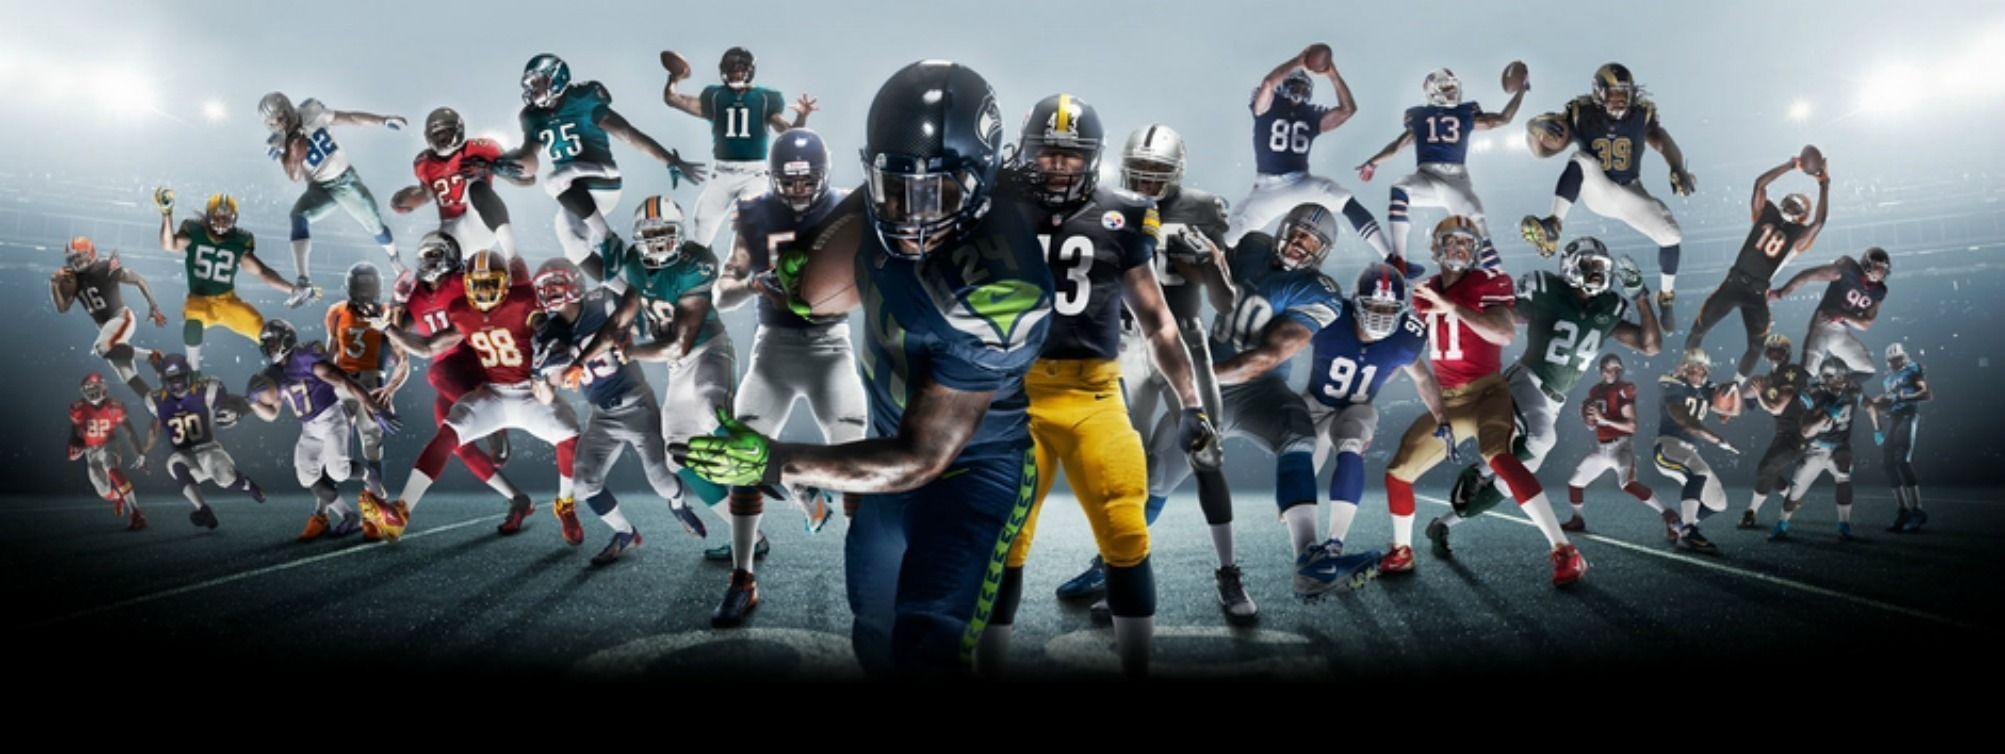 nfl wallpaper for android